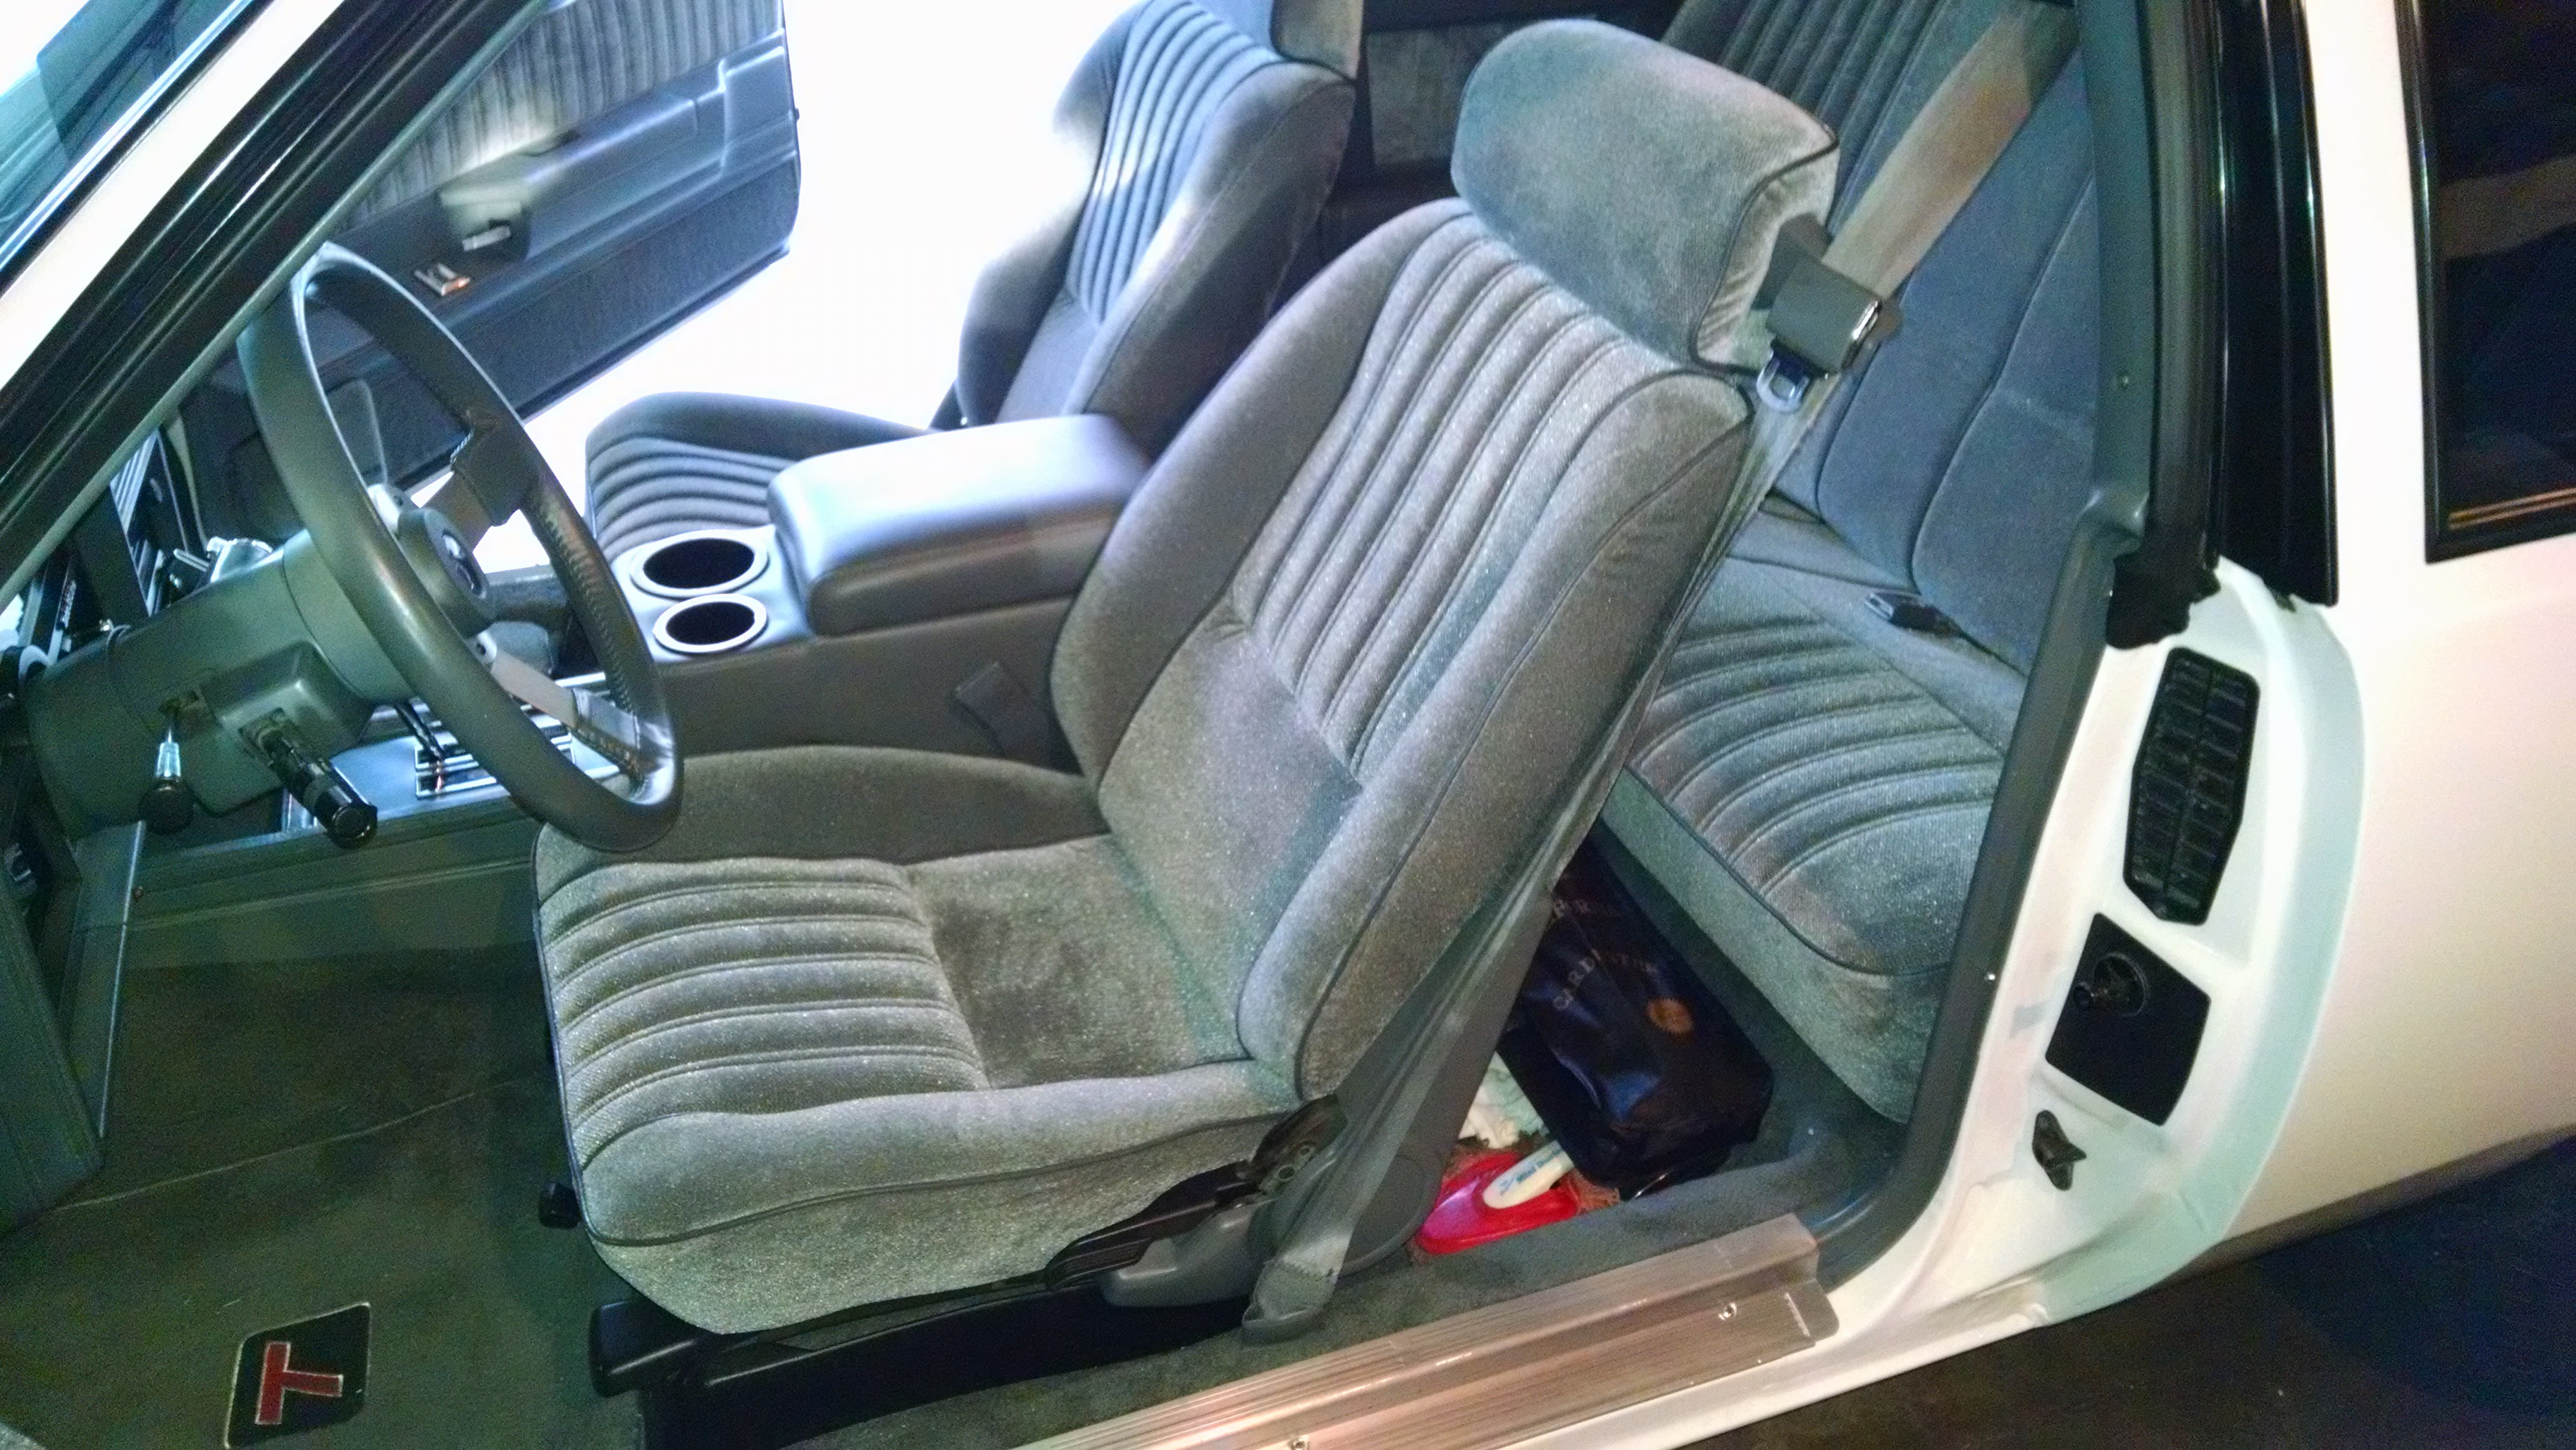 turbo-t-seat-covers-from-highway-stars-owner-jeremy-b-of-illinois.jpg